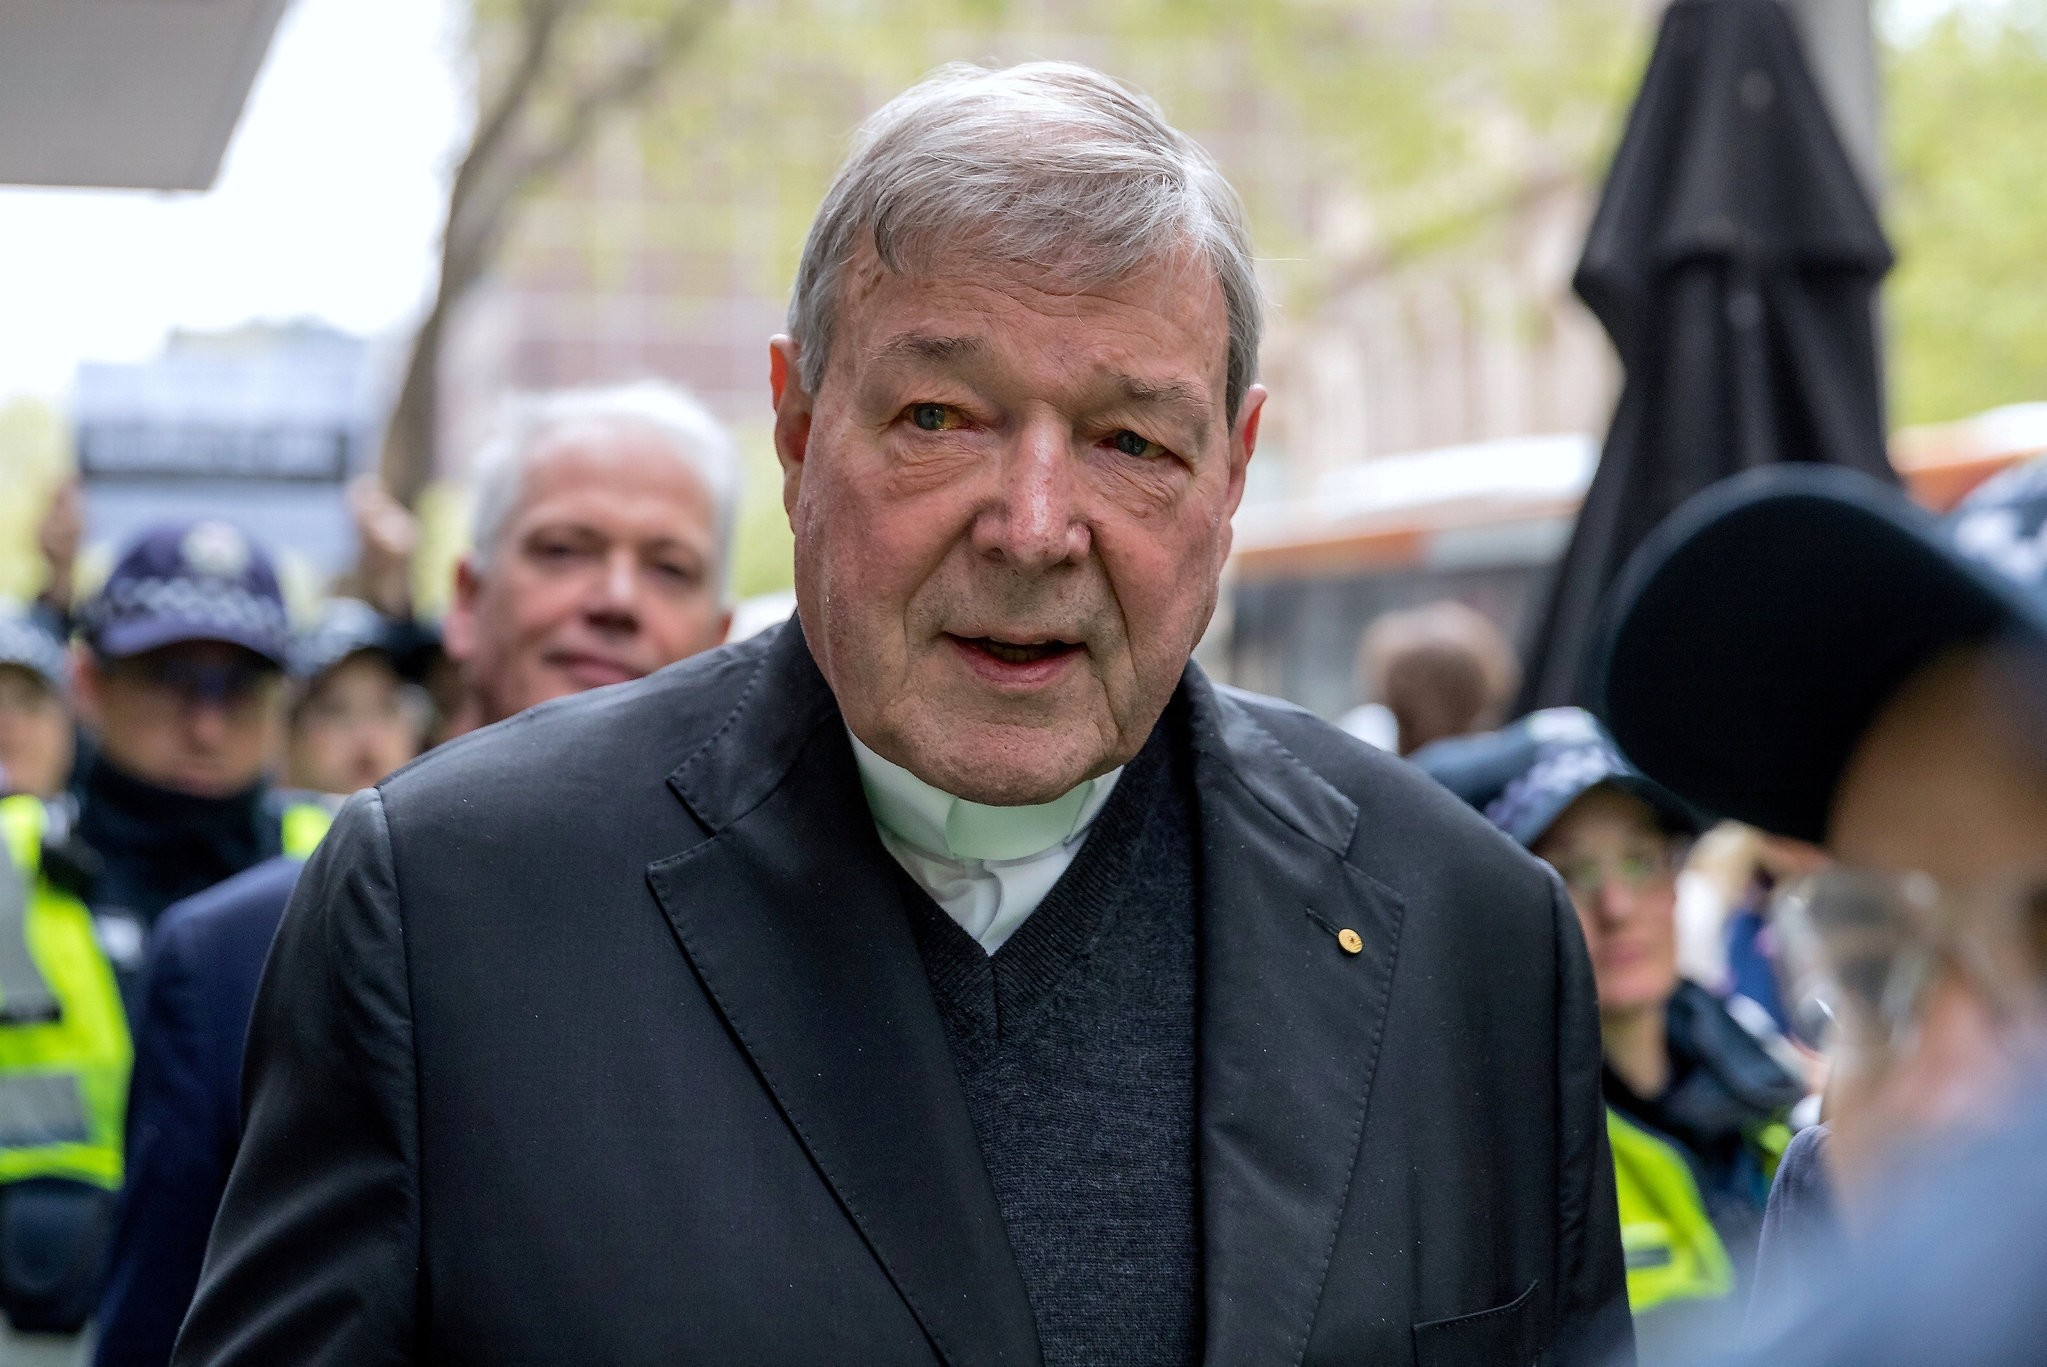 Vatican Treasurer Cardinal George Pell is surrounded by Australian police as he leaves the Melbourne Magistrates Court in Australia, October 6, 2017. (REUTERS Photo)